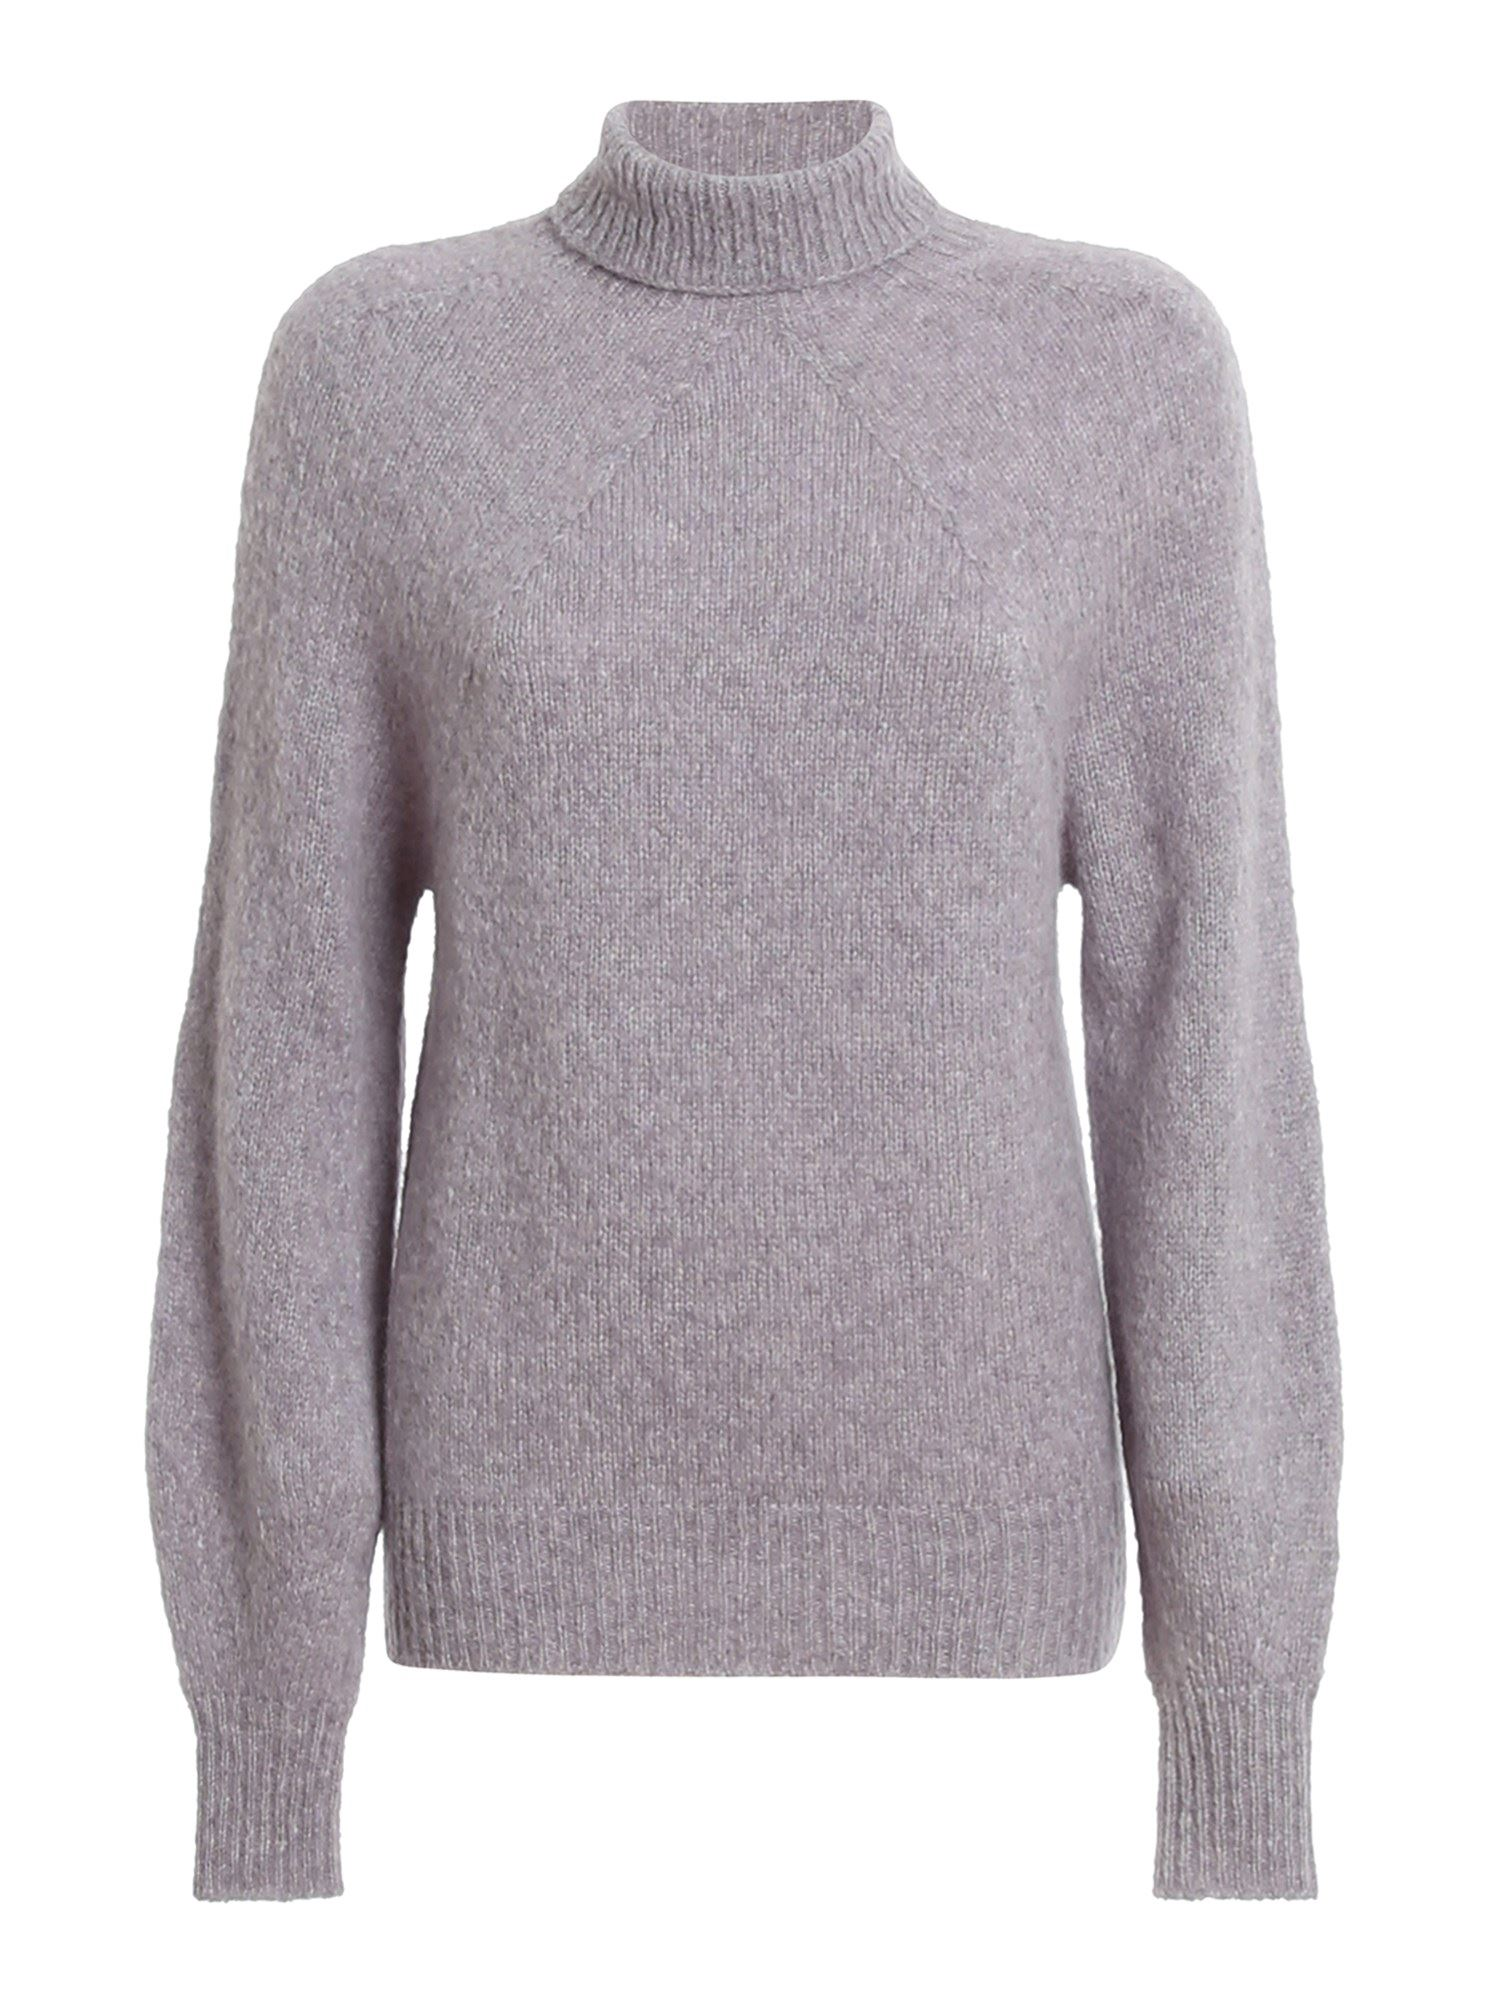 Drumohr WOOL BLEND TURTLENECK SWEATER IN PURPLE